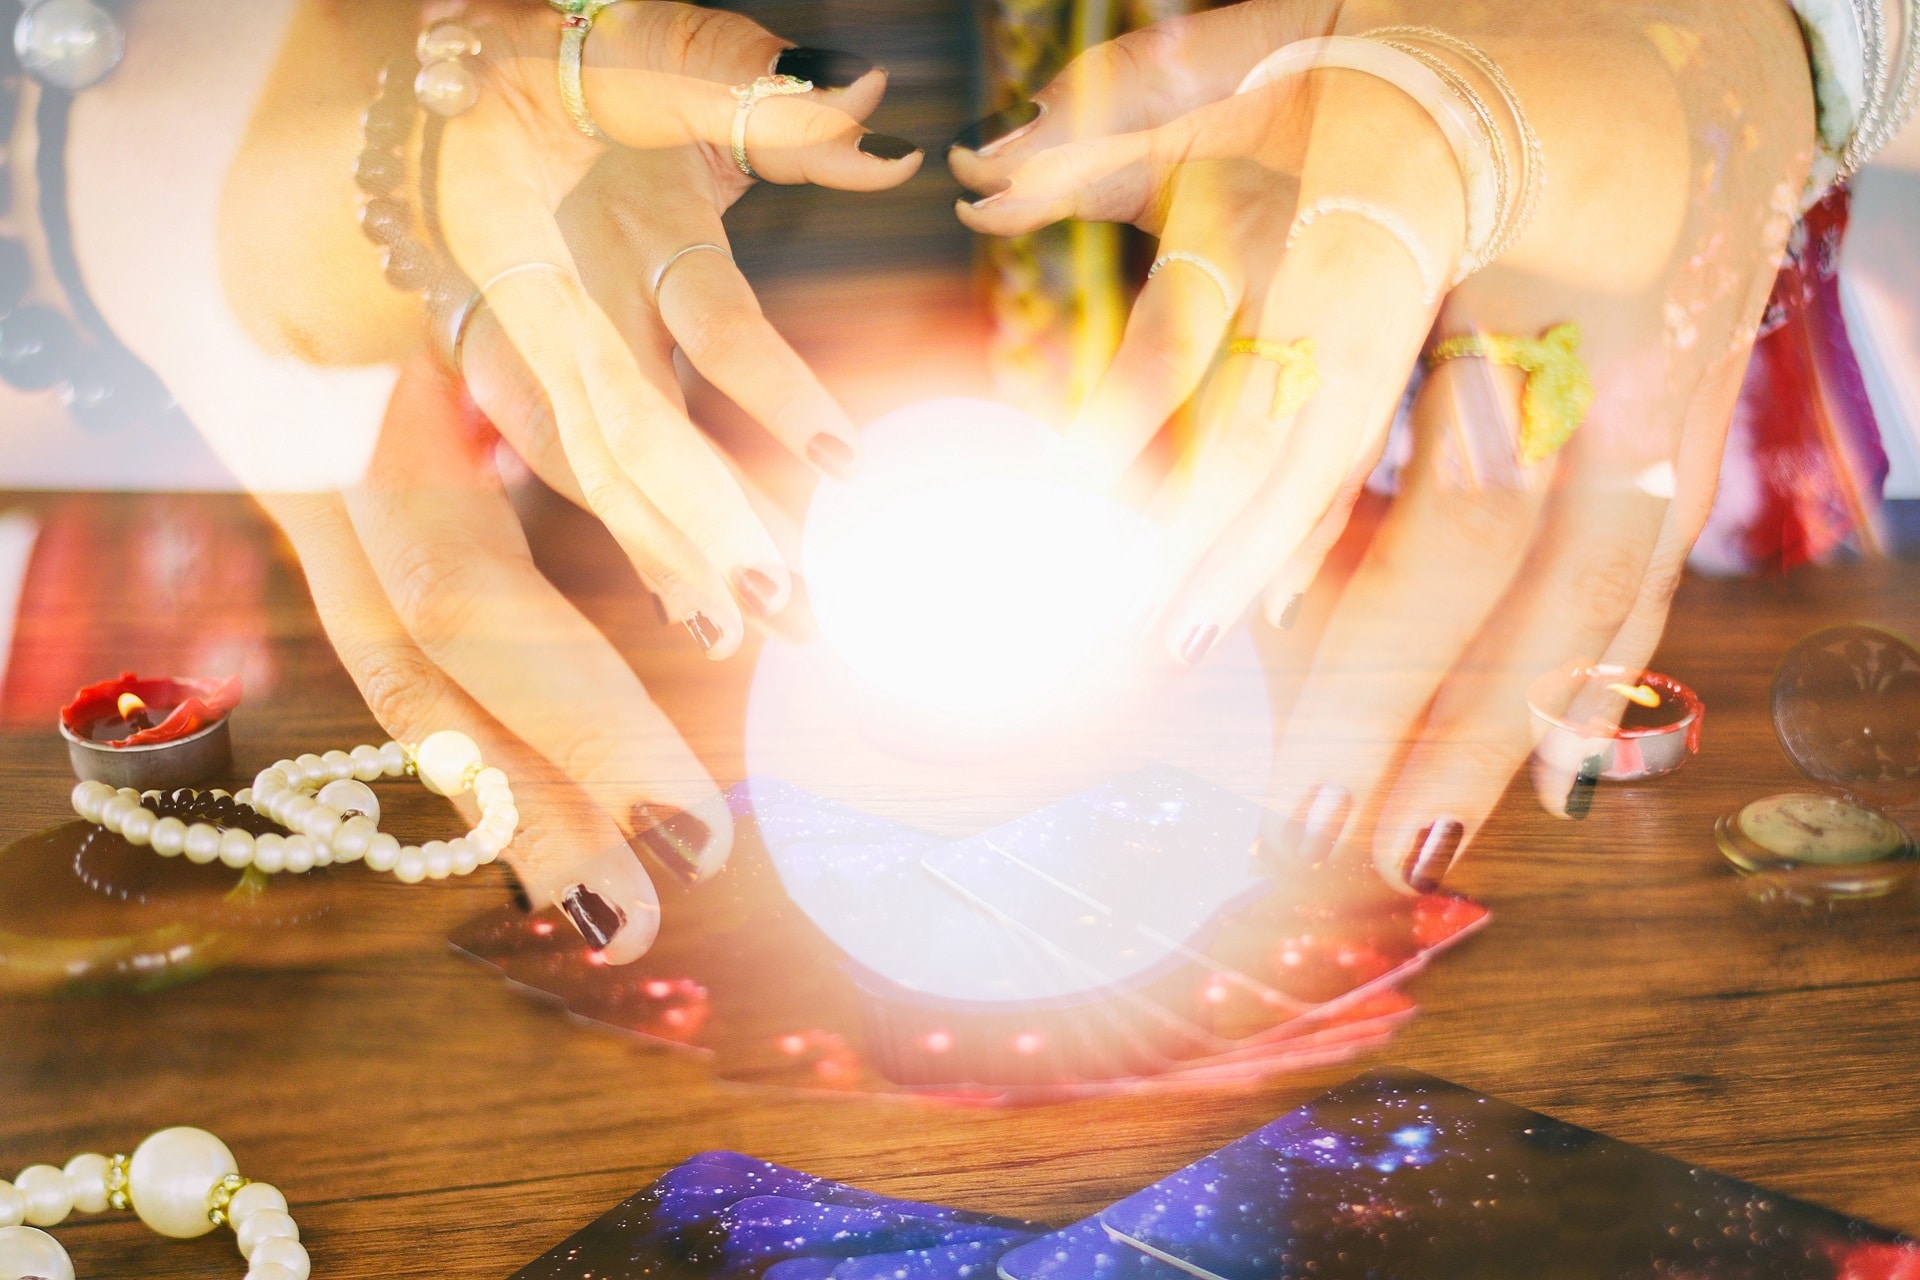 Psychic readings and clairvoyance concept - Crystal ball fortune teller hands